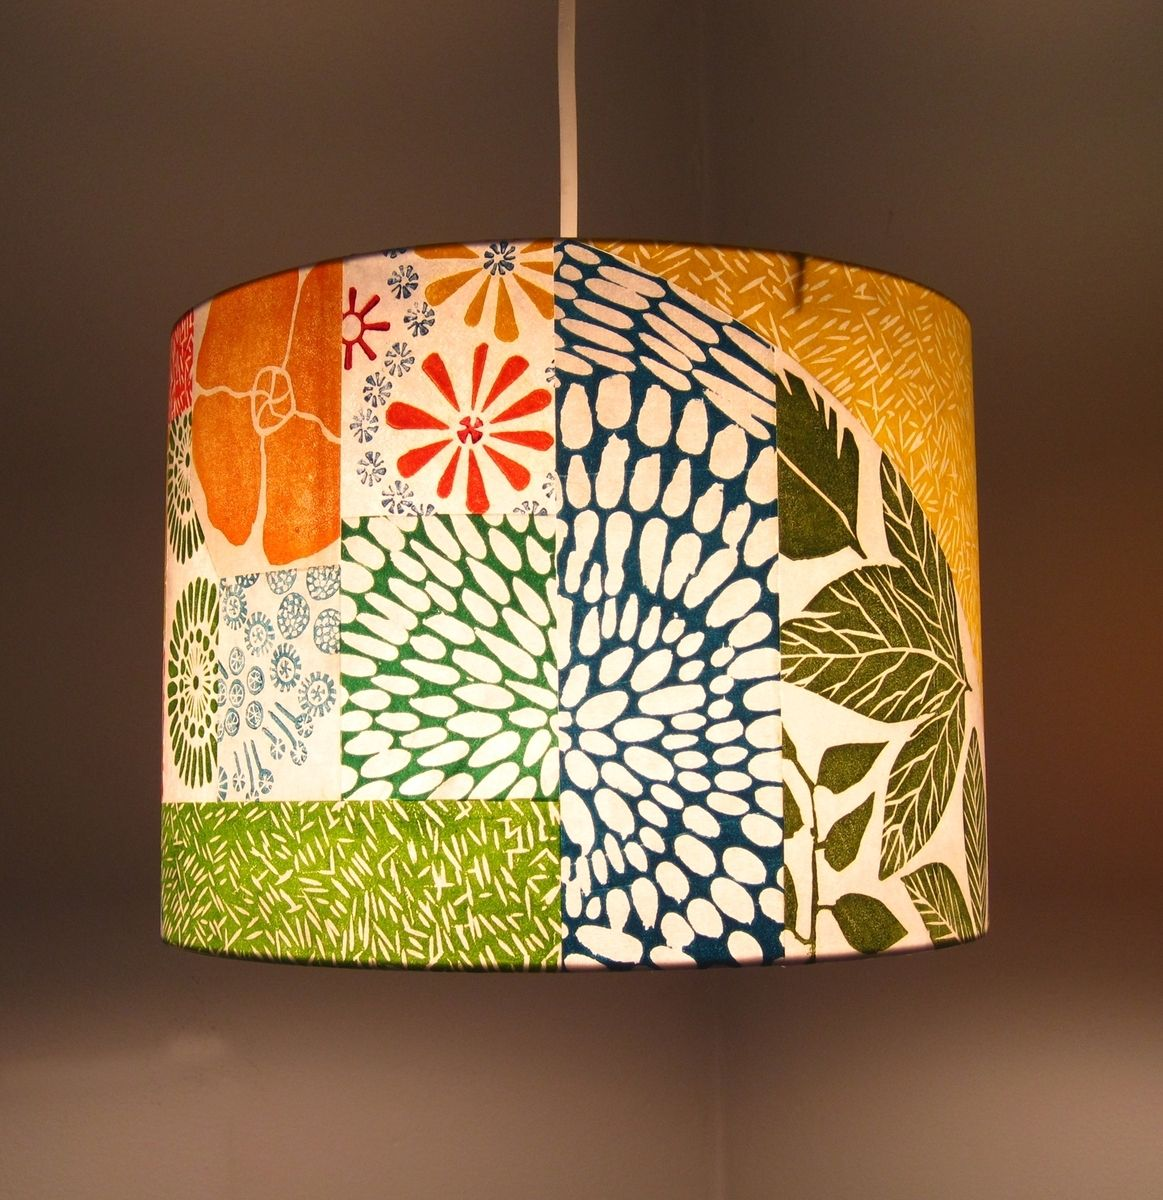 Hand Crafted Hand Printed Collage Lamp Shade By Jeanne